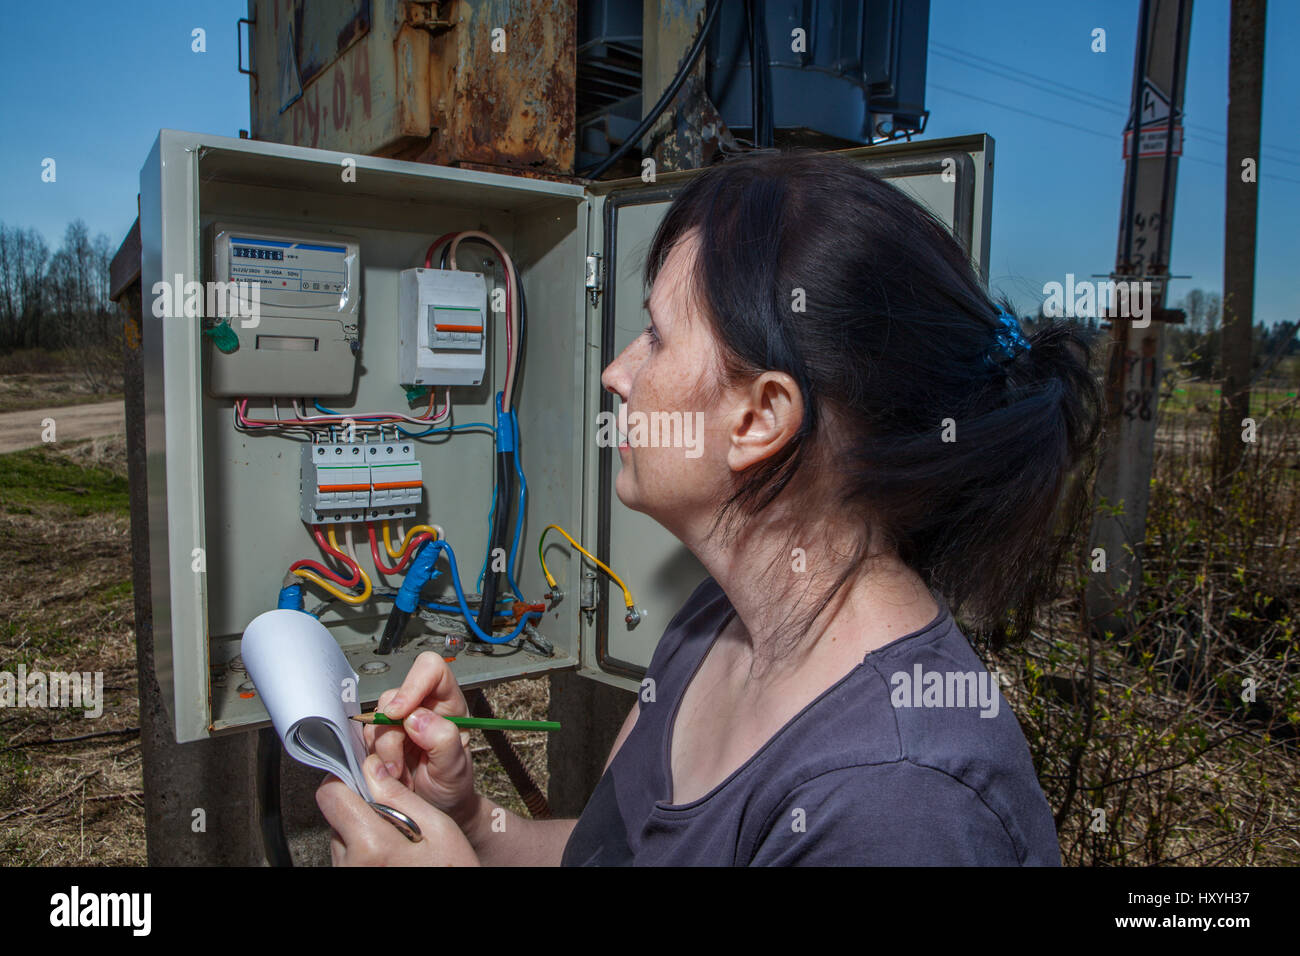 Old Switchgear Stock Photos Images Alamy Free Photography Electric Meter Messy Electrical Installation Woman Technician Reading The Electricity To Check Consumption Standing Near Power